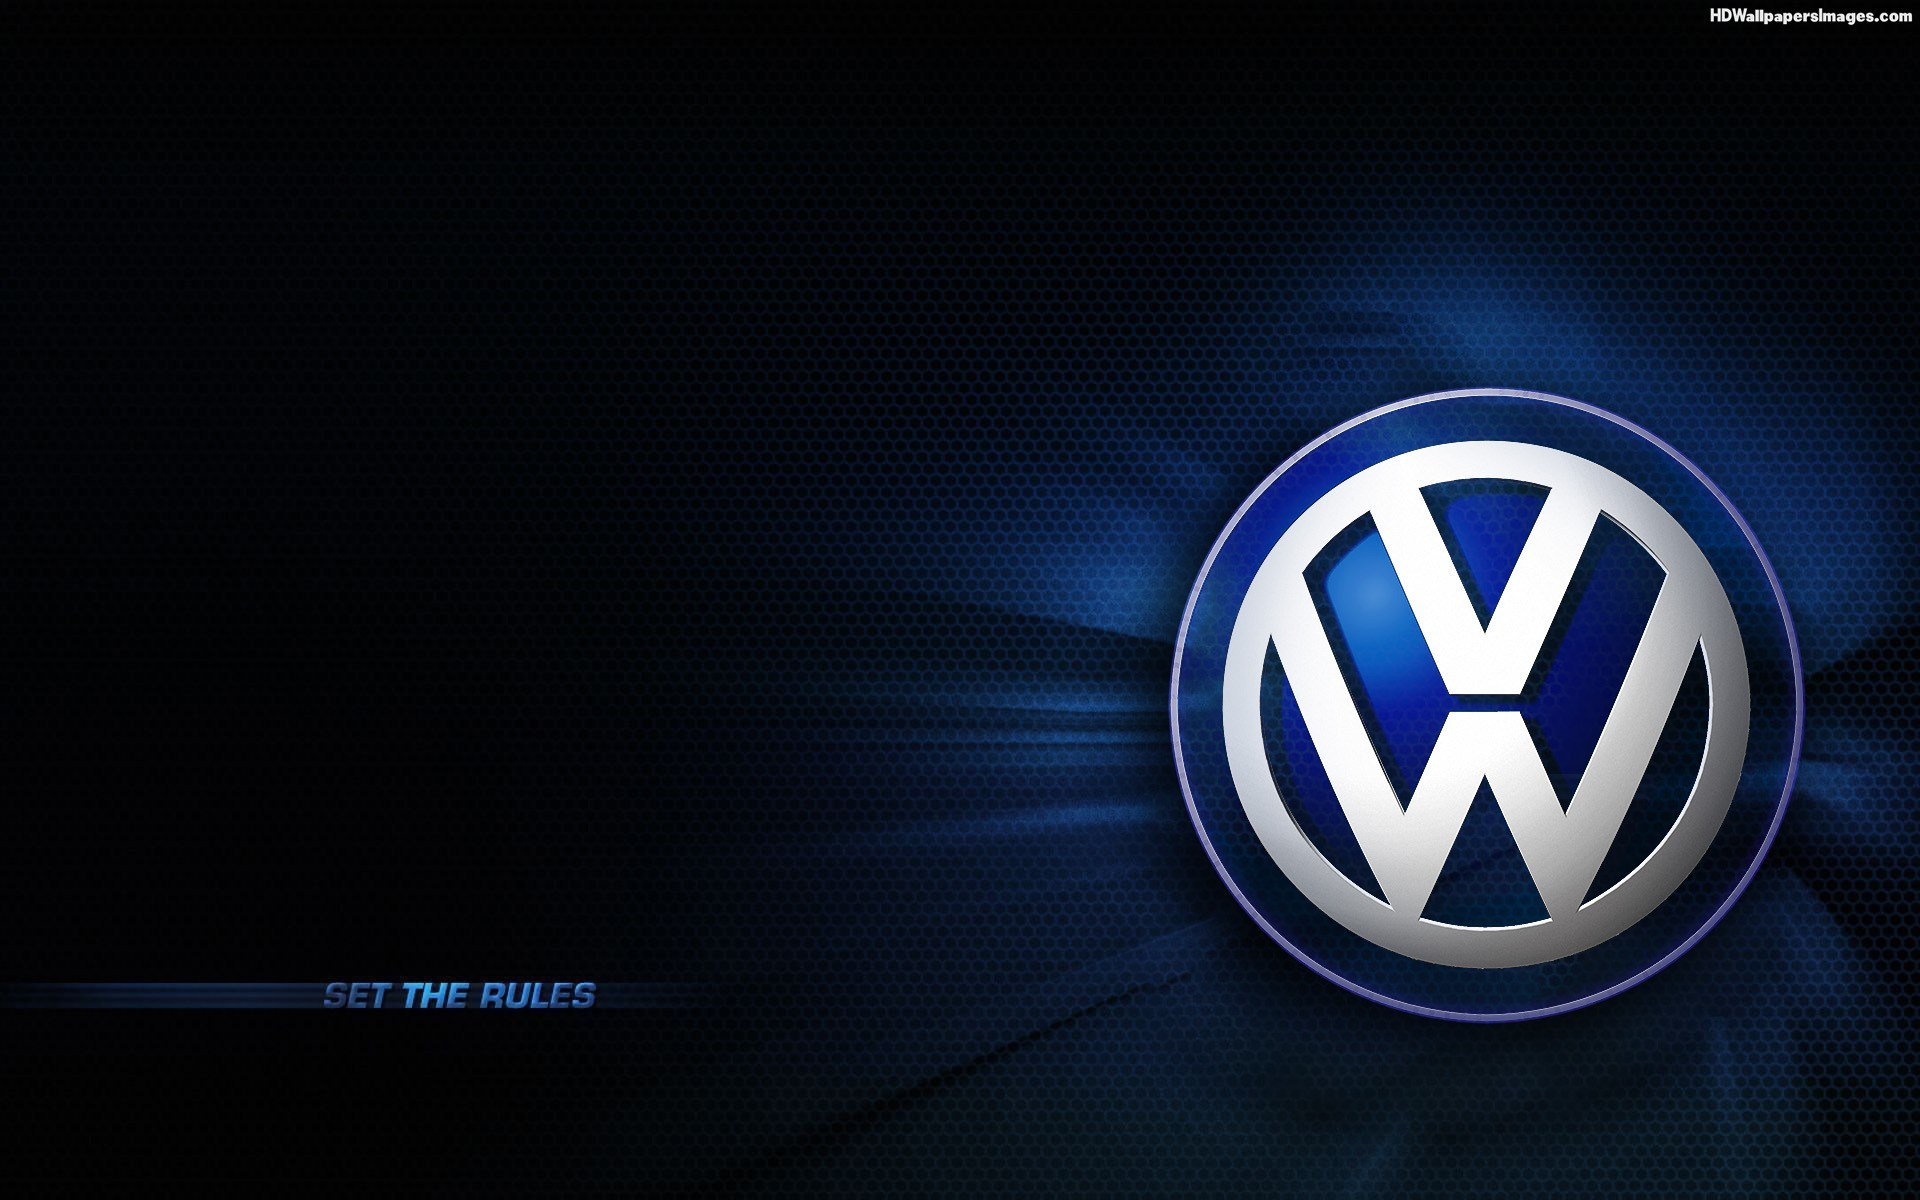 3264x1836 volkswagen golf logo wallpaper.